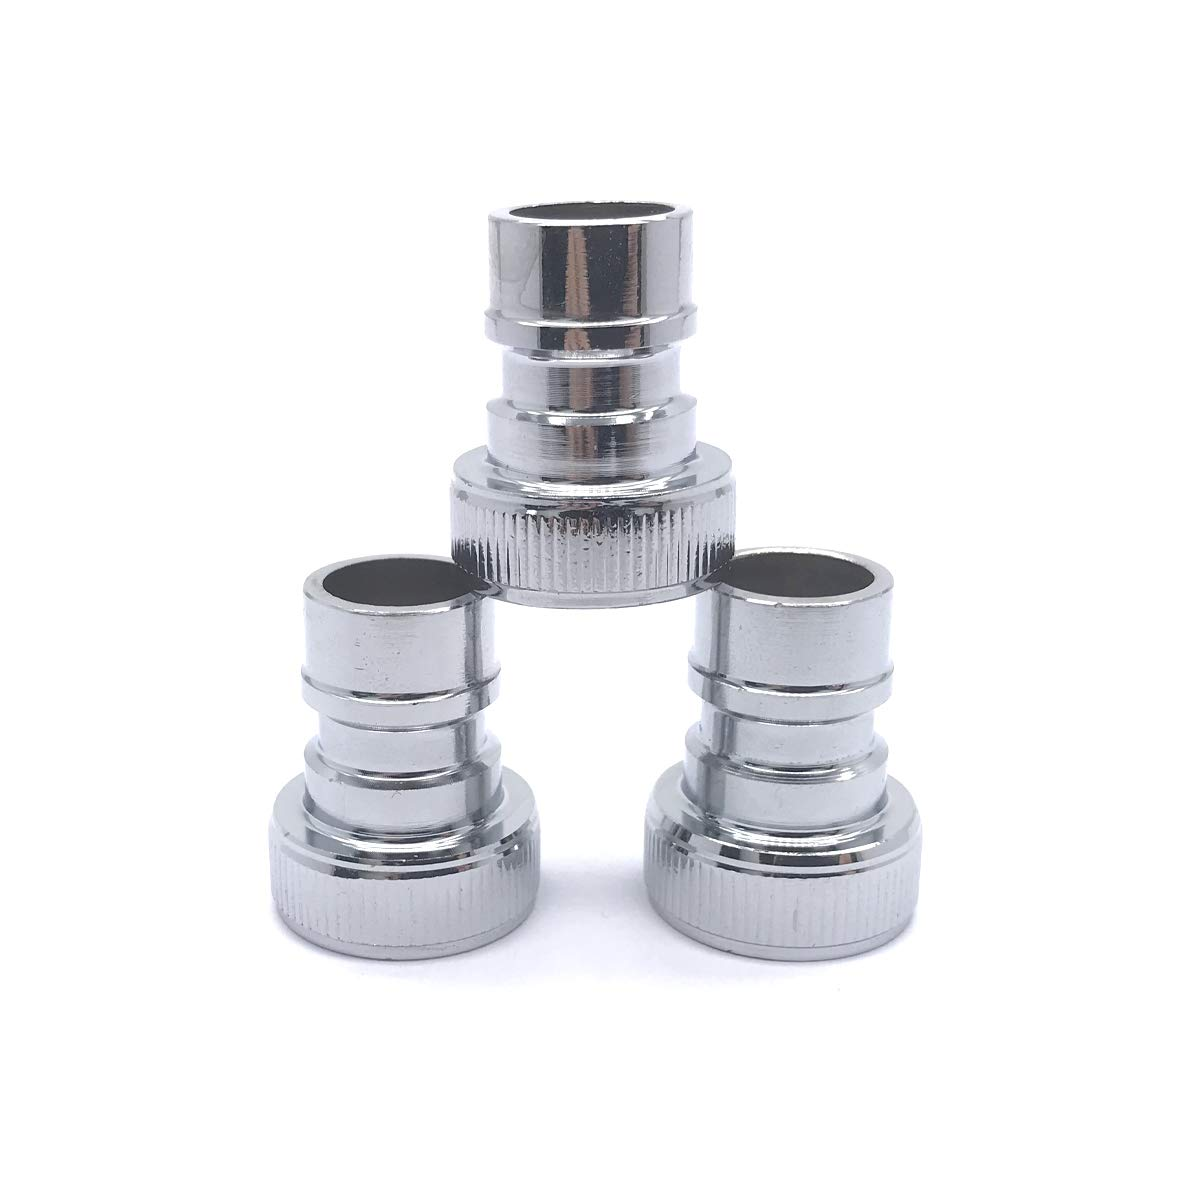 3Pcs Brass Faucet Tap Quick Connector G1//2 Female Thread Hose Pipe Socket Adapter Fitting for Dishwasher Washing Machine